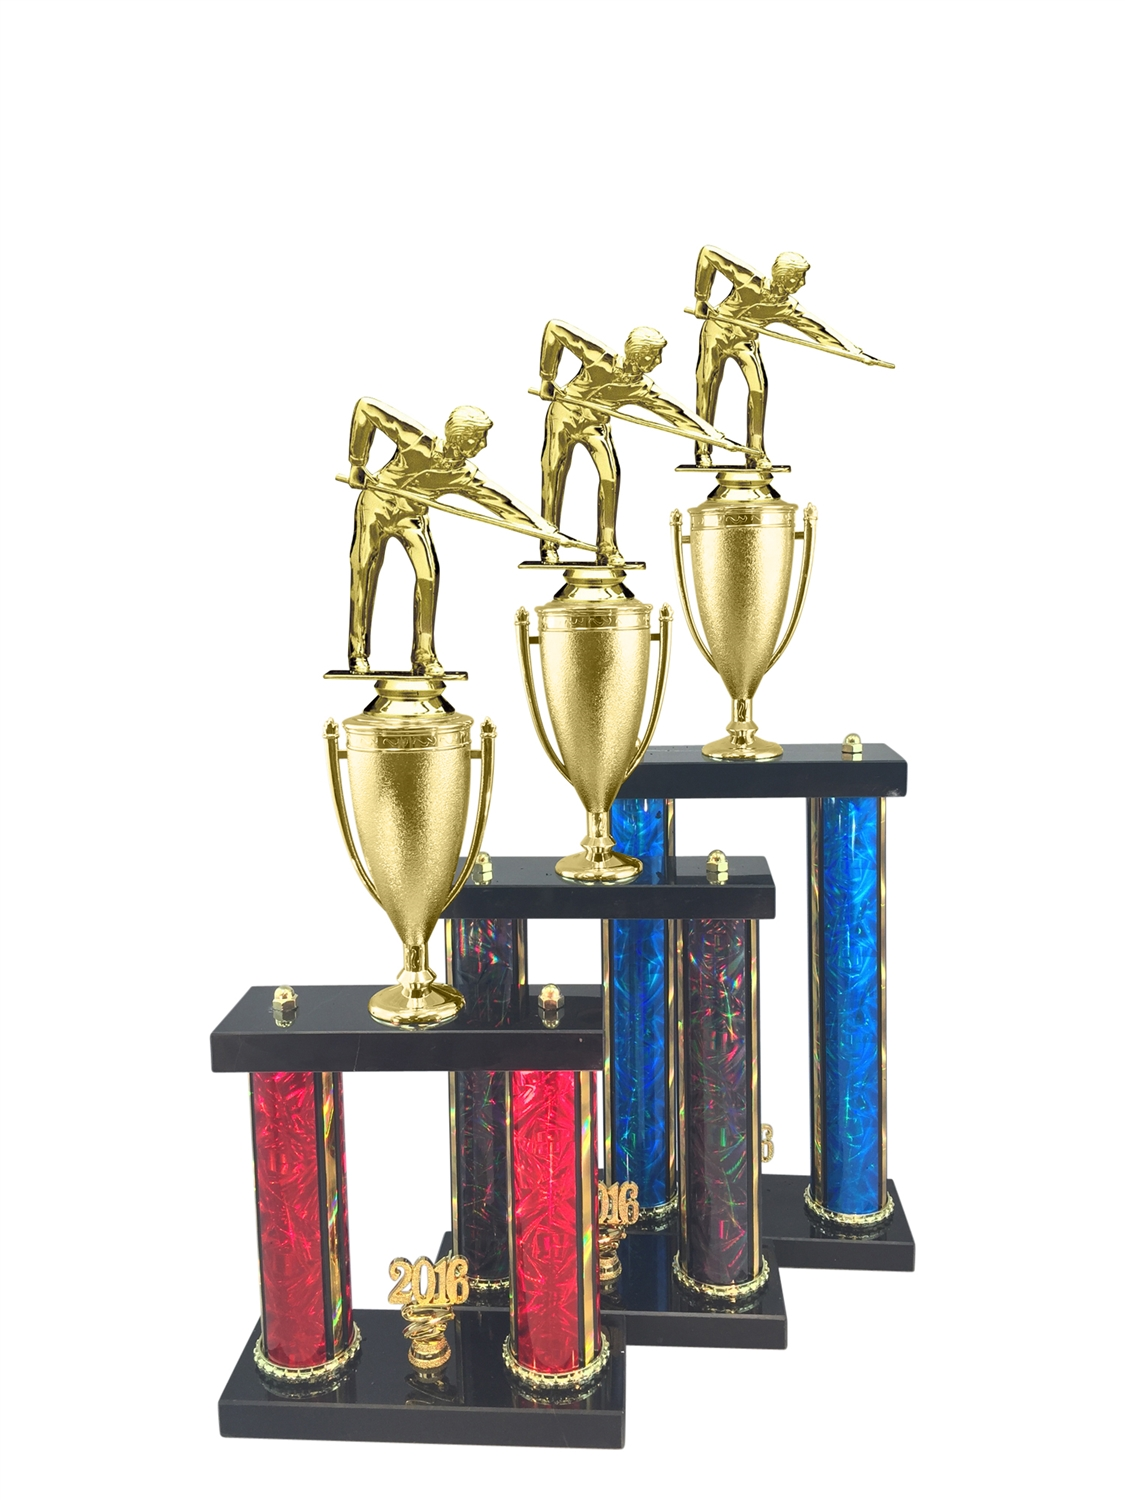 2 Post Male Billiards - Pool Trophy in 11 Color & 3 Size Options